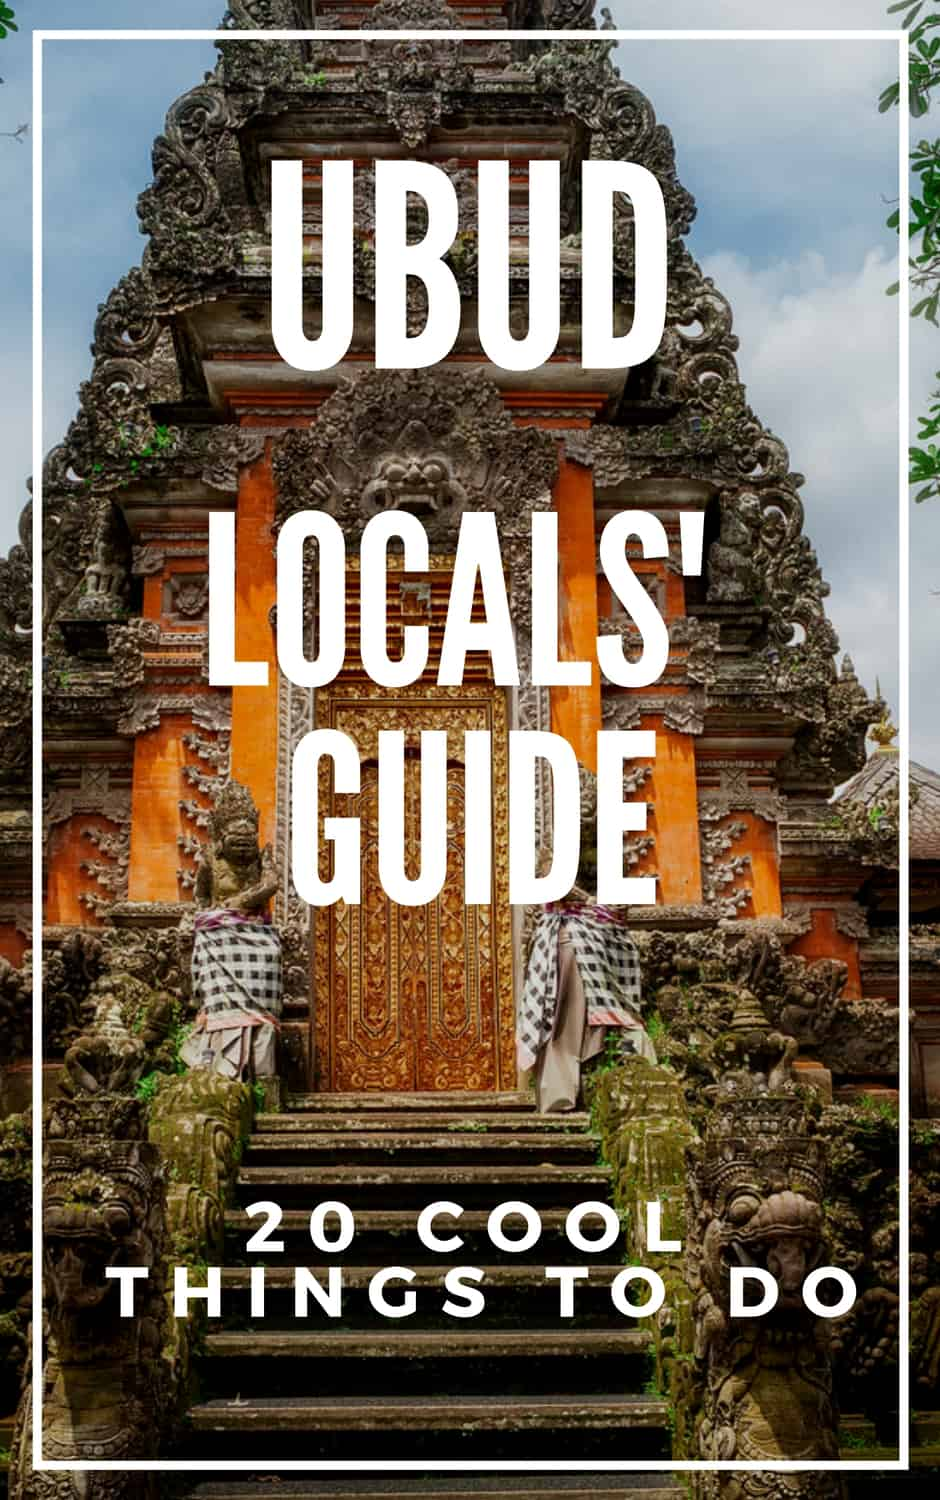 ubud local guide 20 things to do in ubud 2019